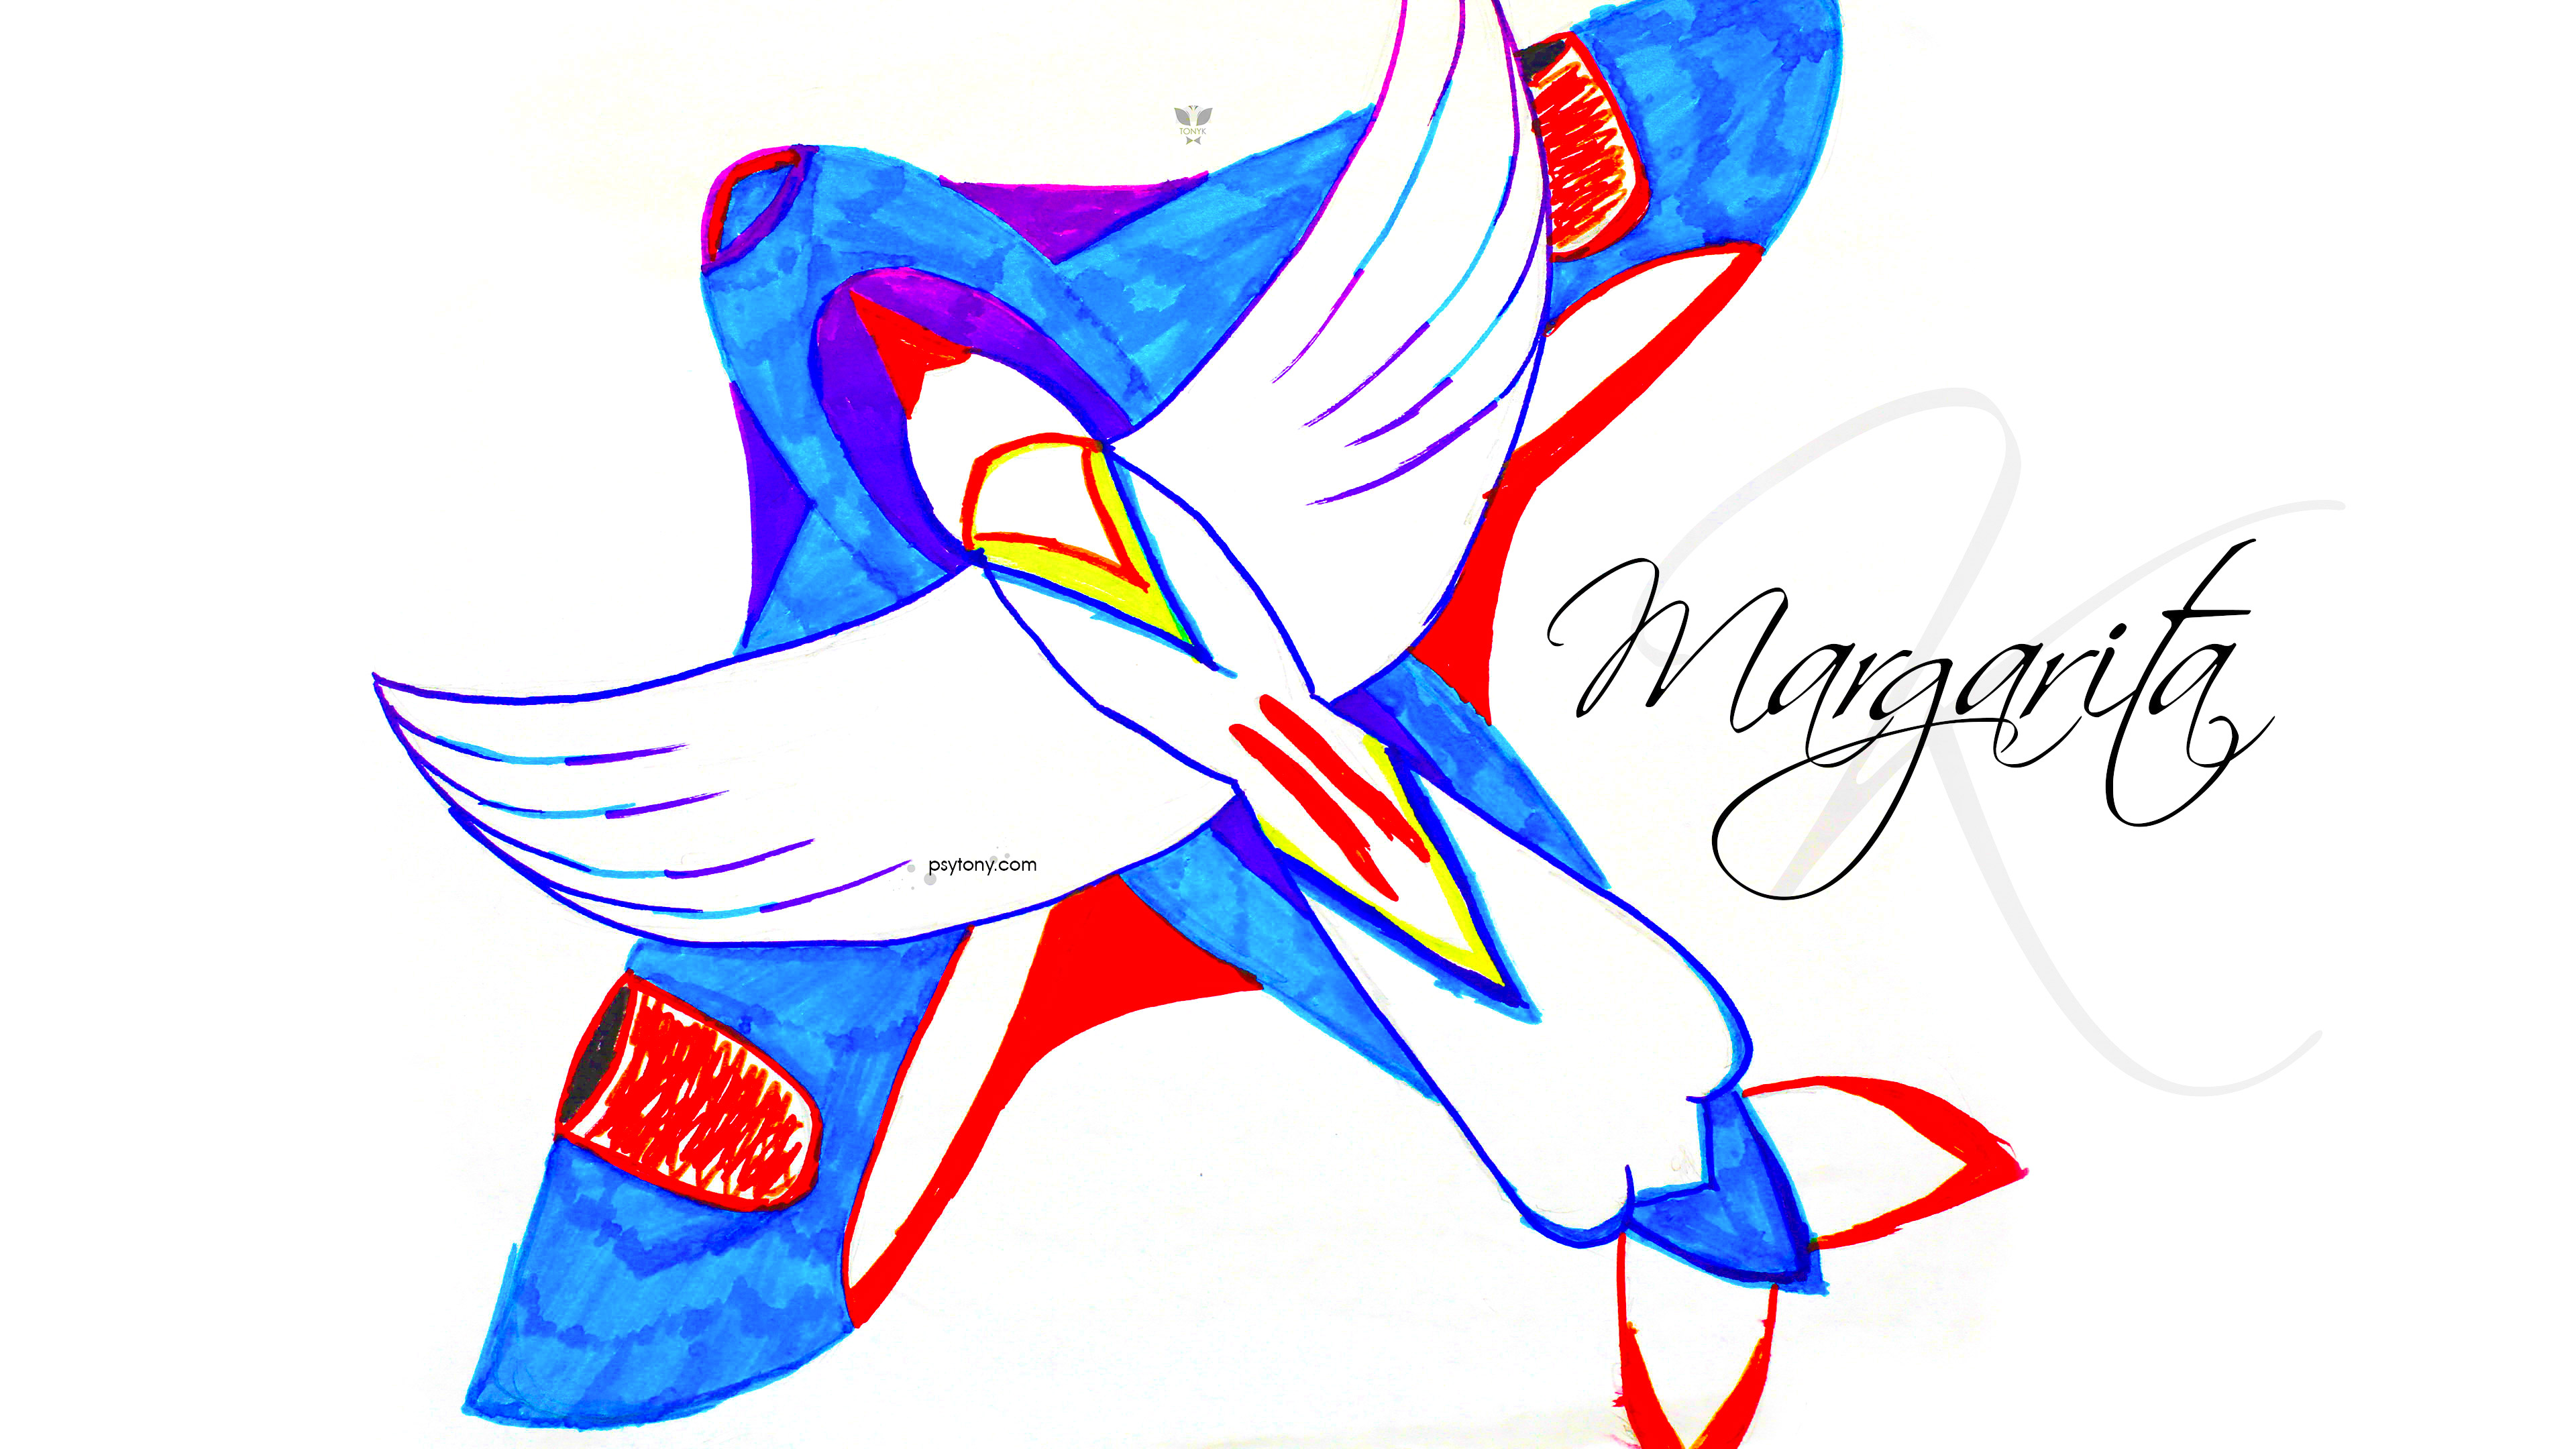 Margarita-Soul-Girl-Super-Bird-And-Aircraft-Fly-Drawing-With-Markers-Soul-Art-2019-Blue-White-Red-Colors-4K-Wallpapers-by-Psychologist-Tony-Kokhan-www.psytony.com-image